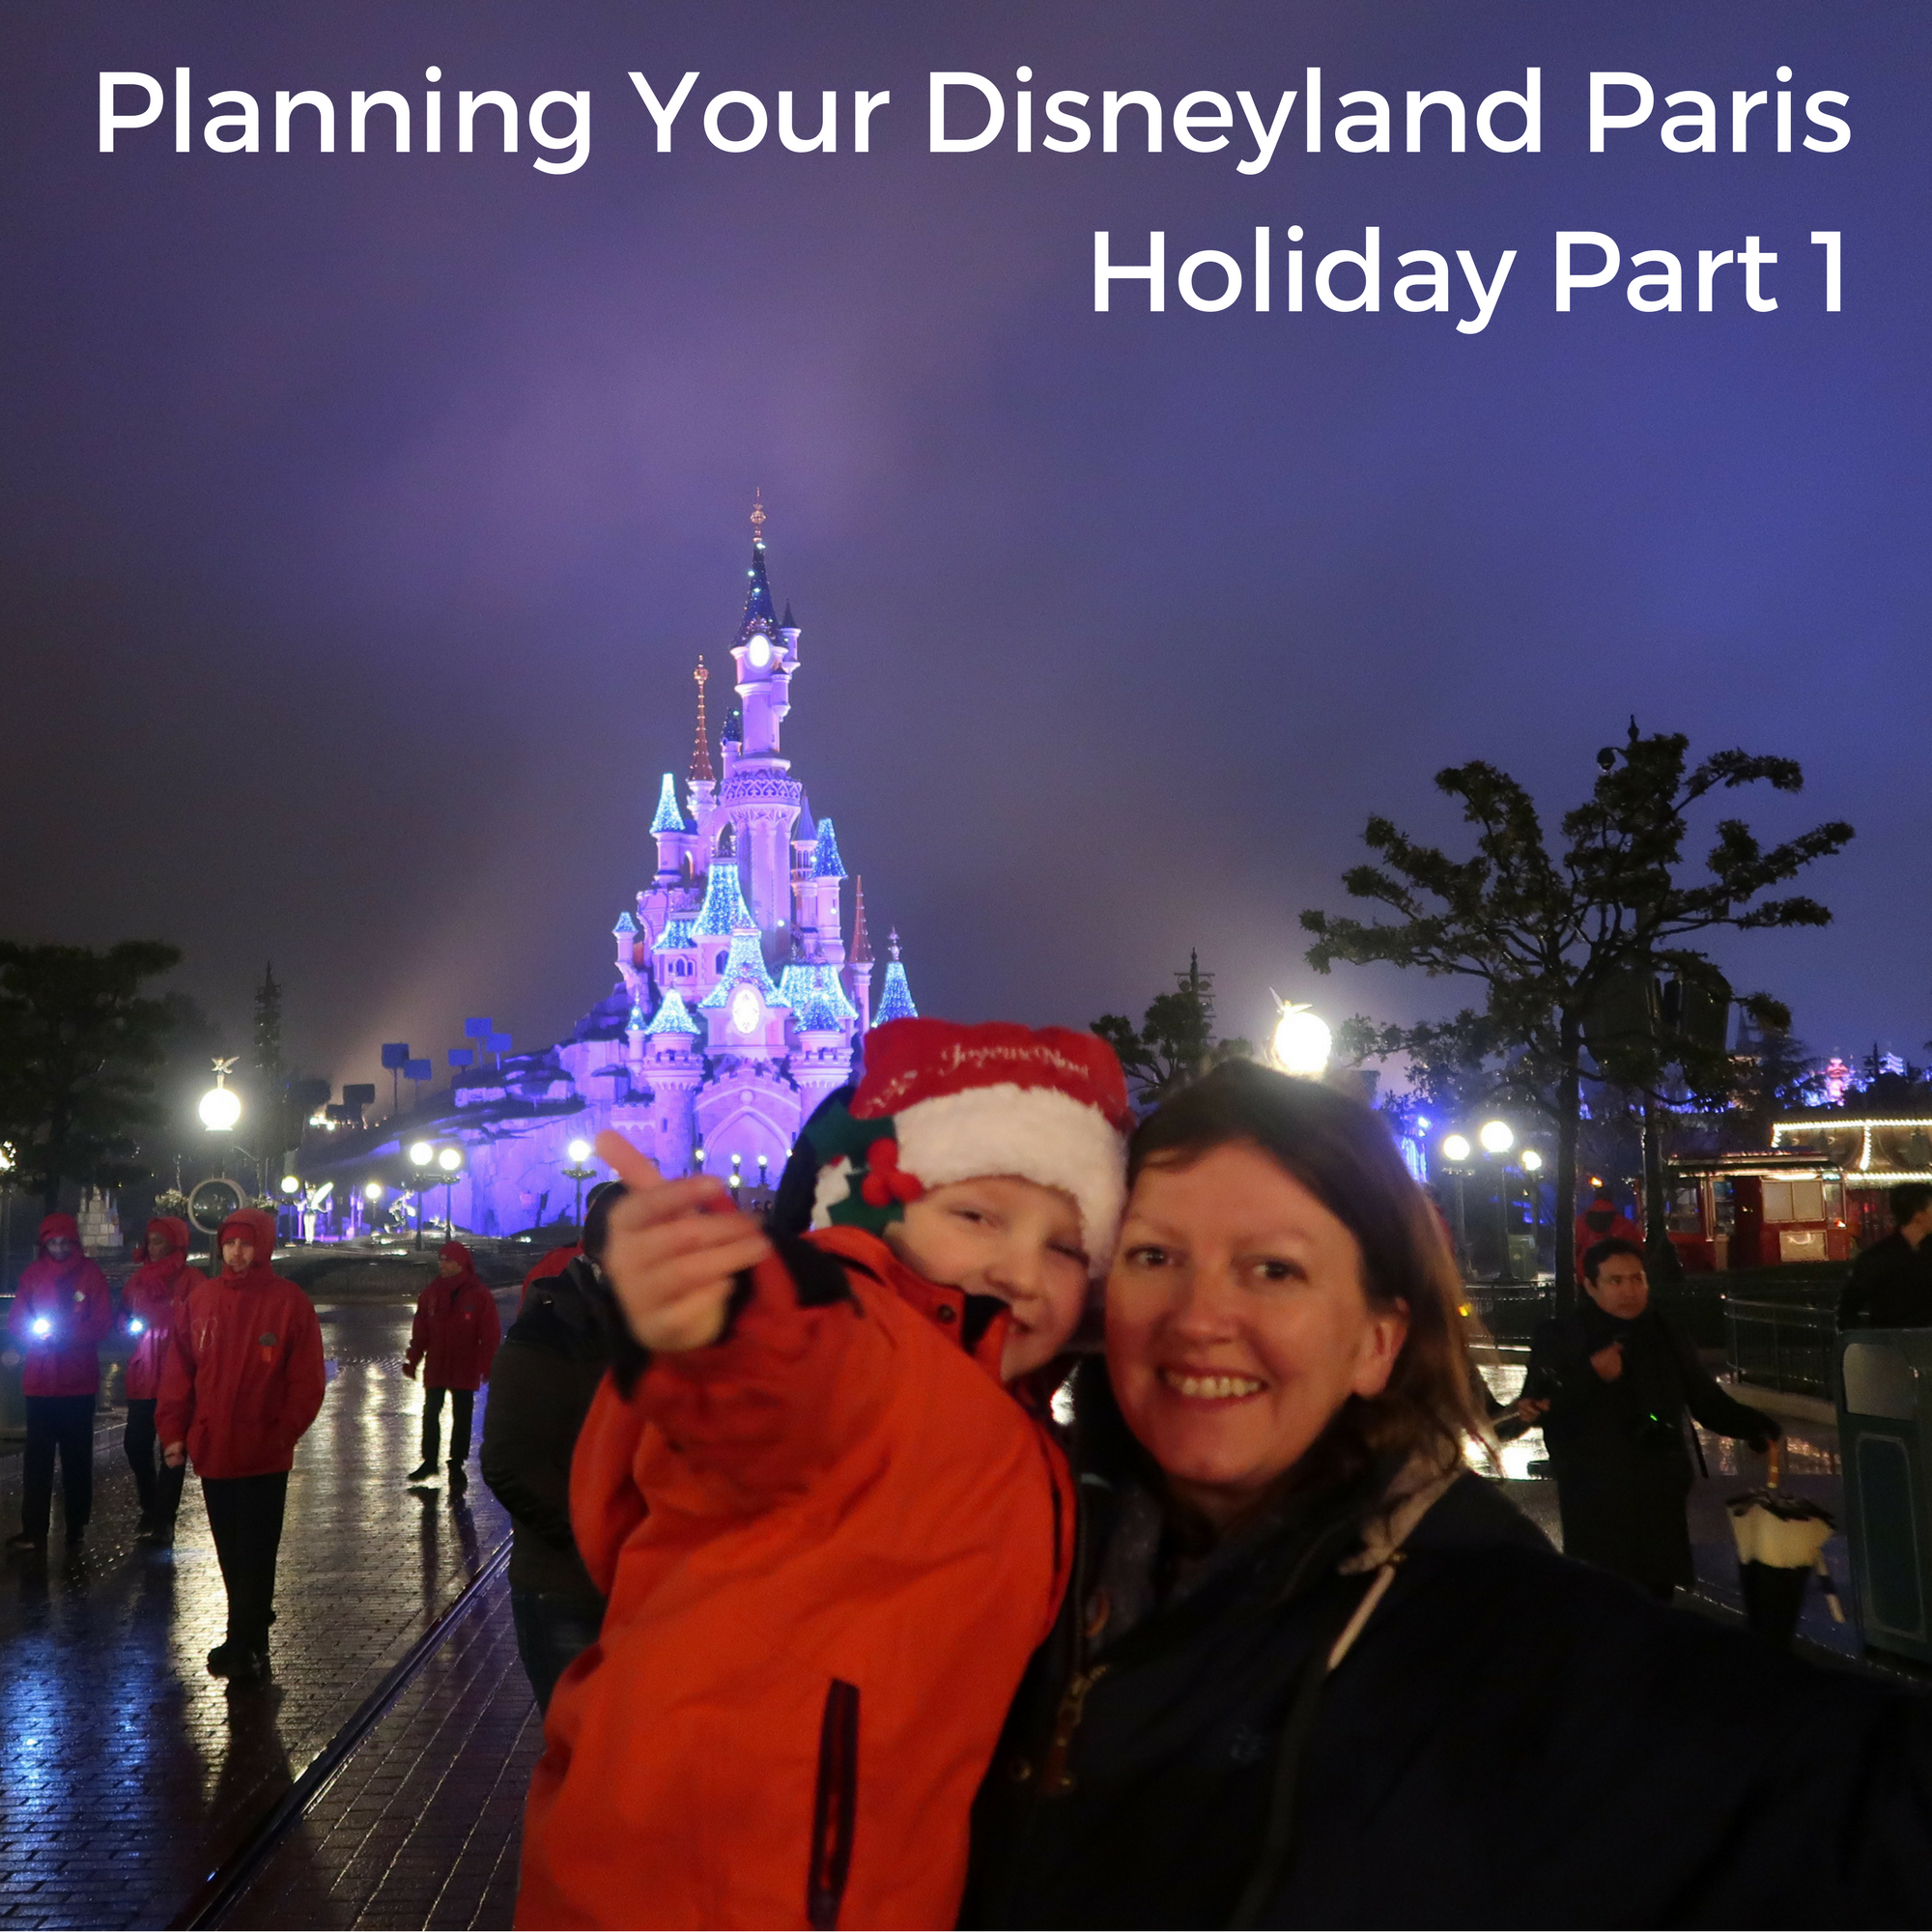 Planning Your Disneyland Paris Holiday